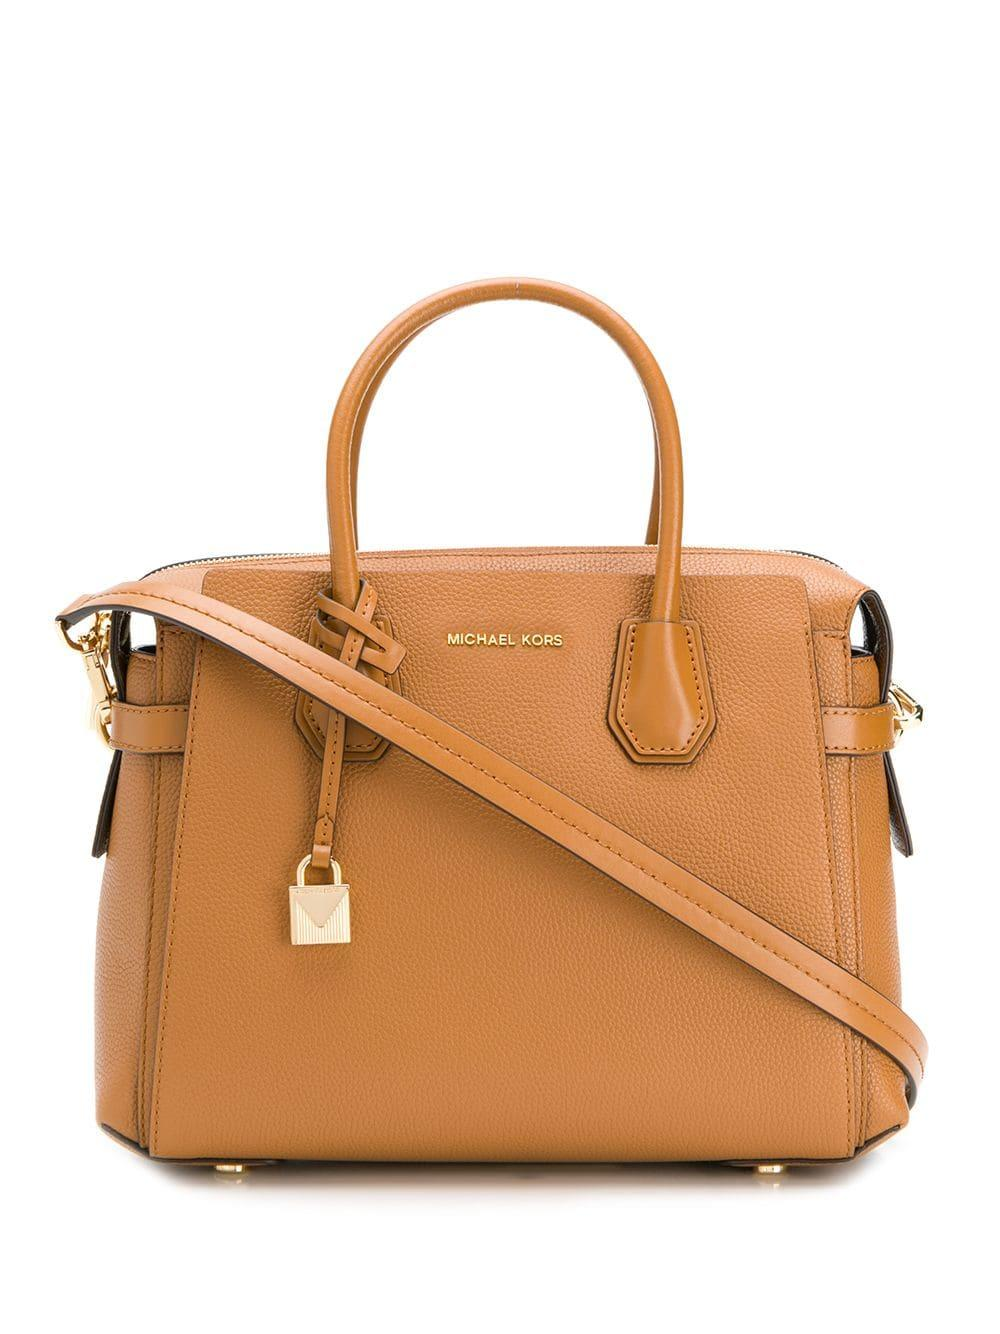 273ac1cab2d6 Lyst - MICHAEL Michael Kors Mercer Belted Leather Satchel Bag in Brown